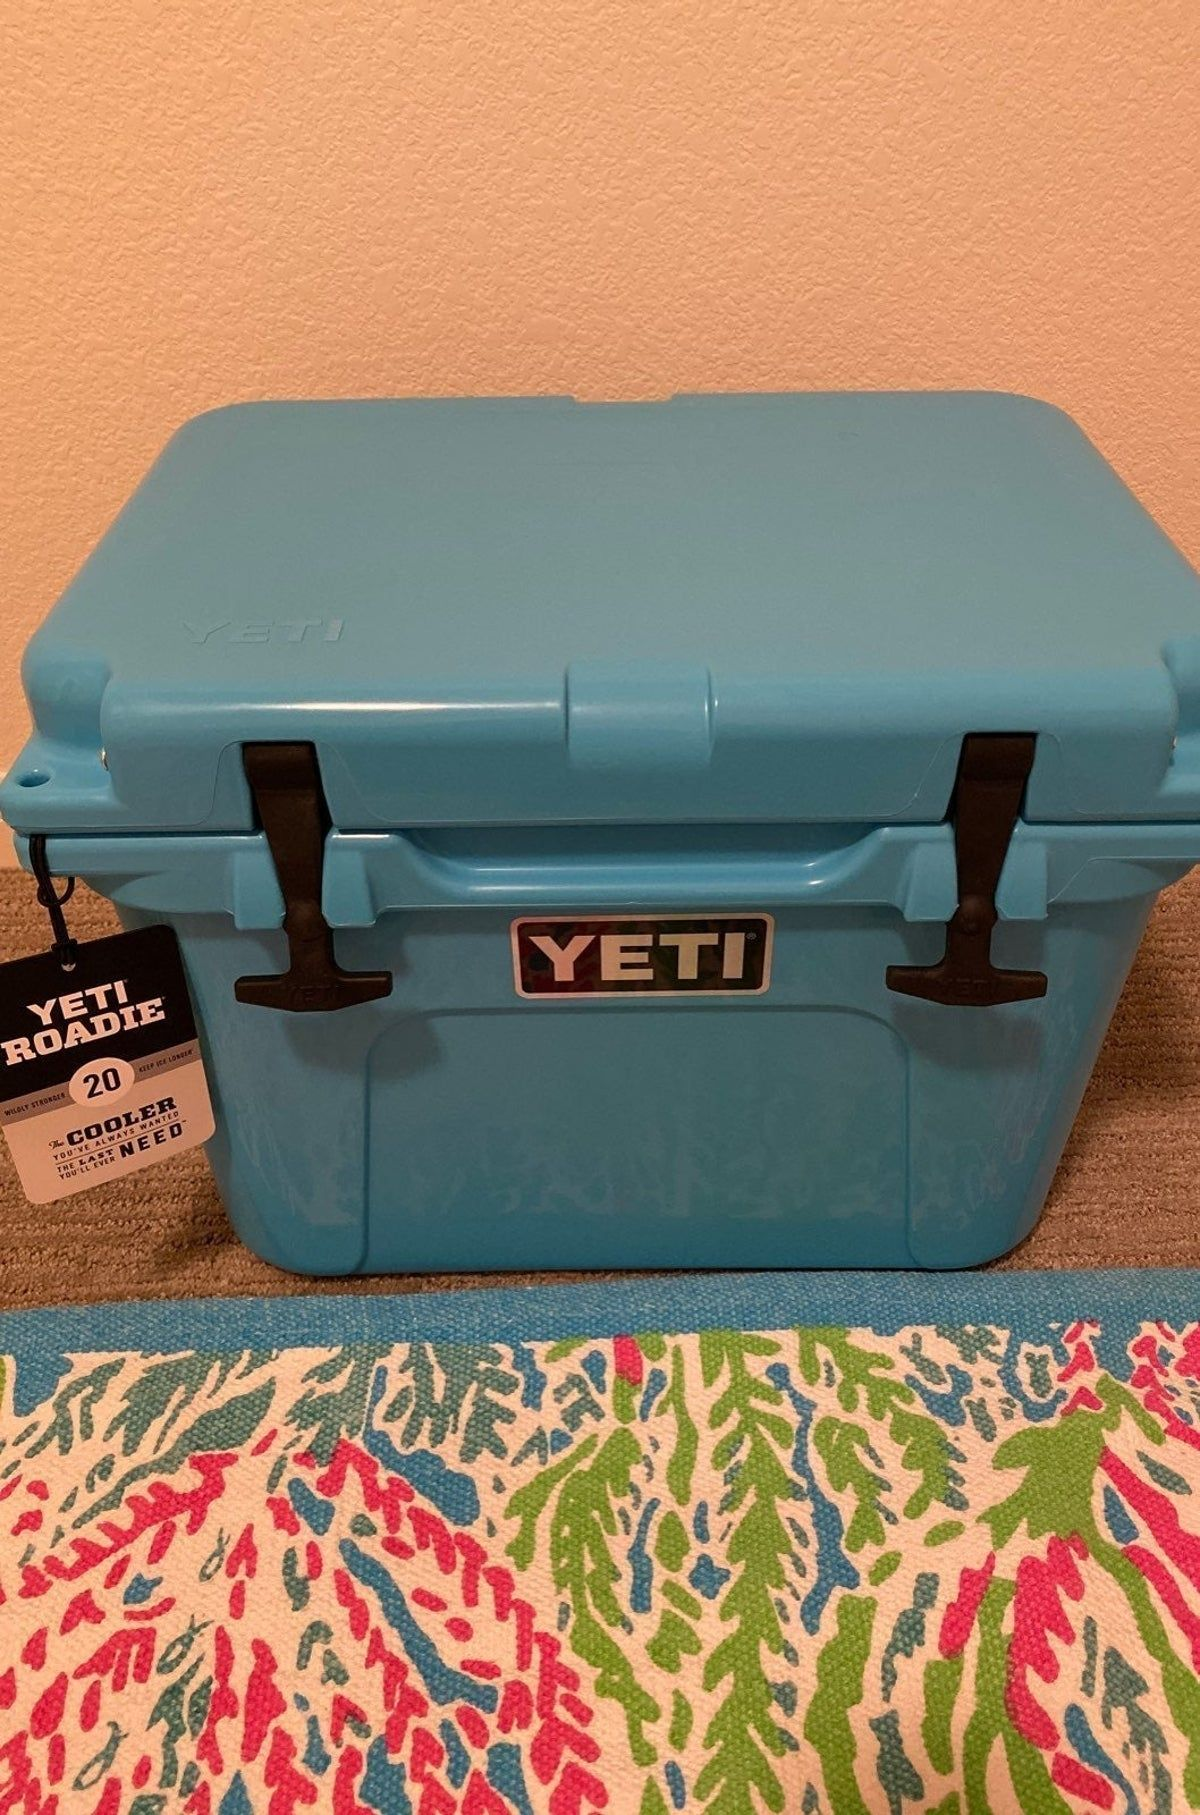 Pin By Paisley Grace On Yeti Coolers In 2020 Cooler Yeti Roadie Cooler Monogram